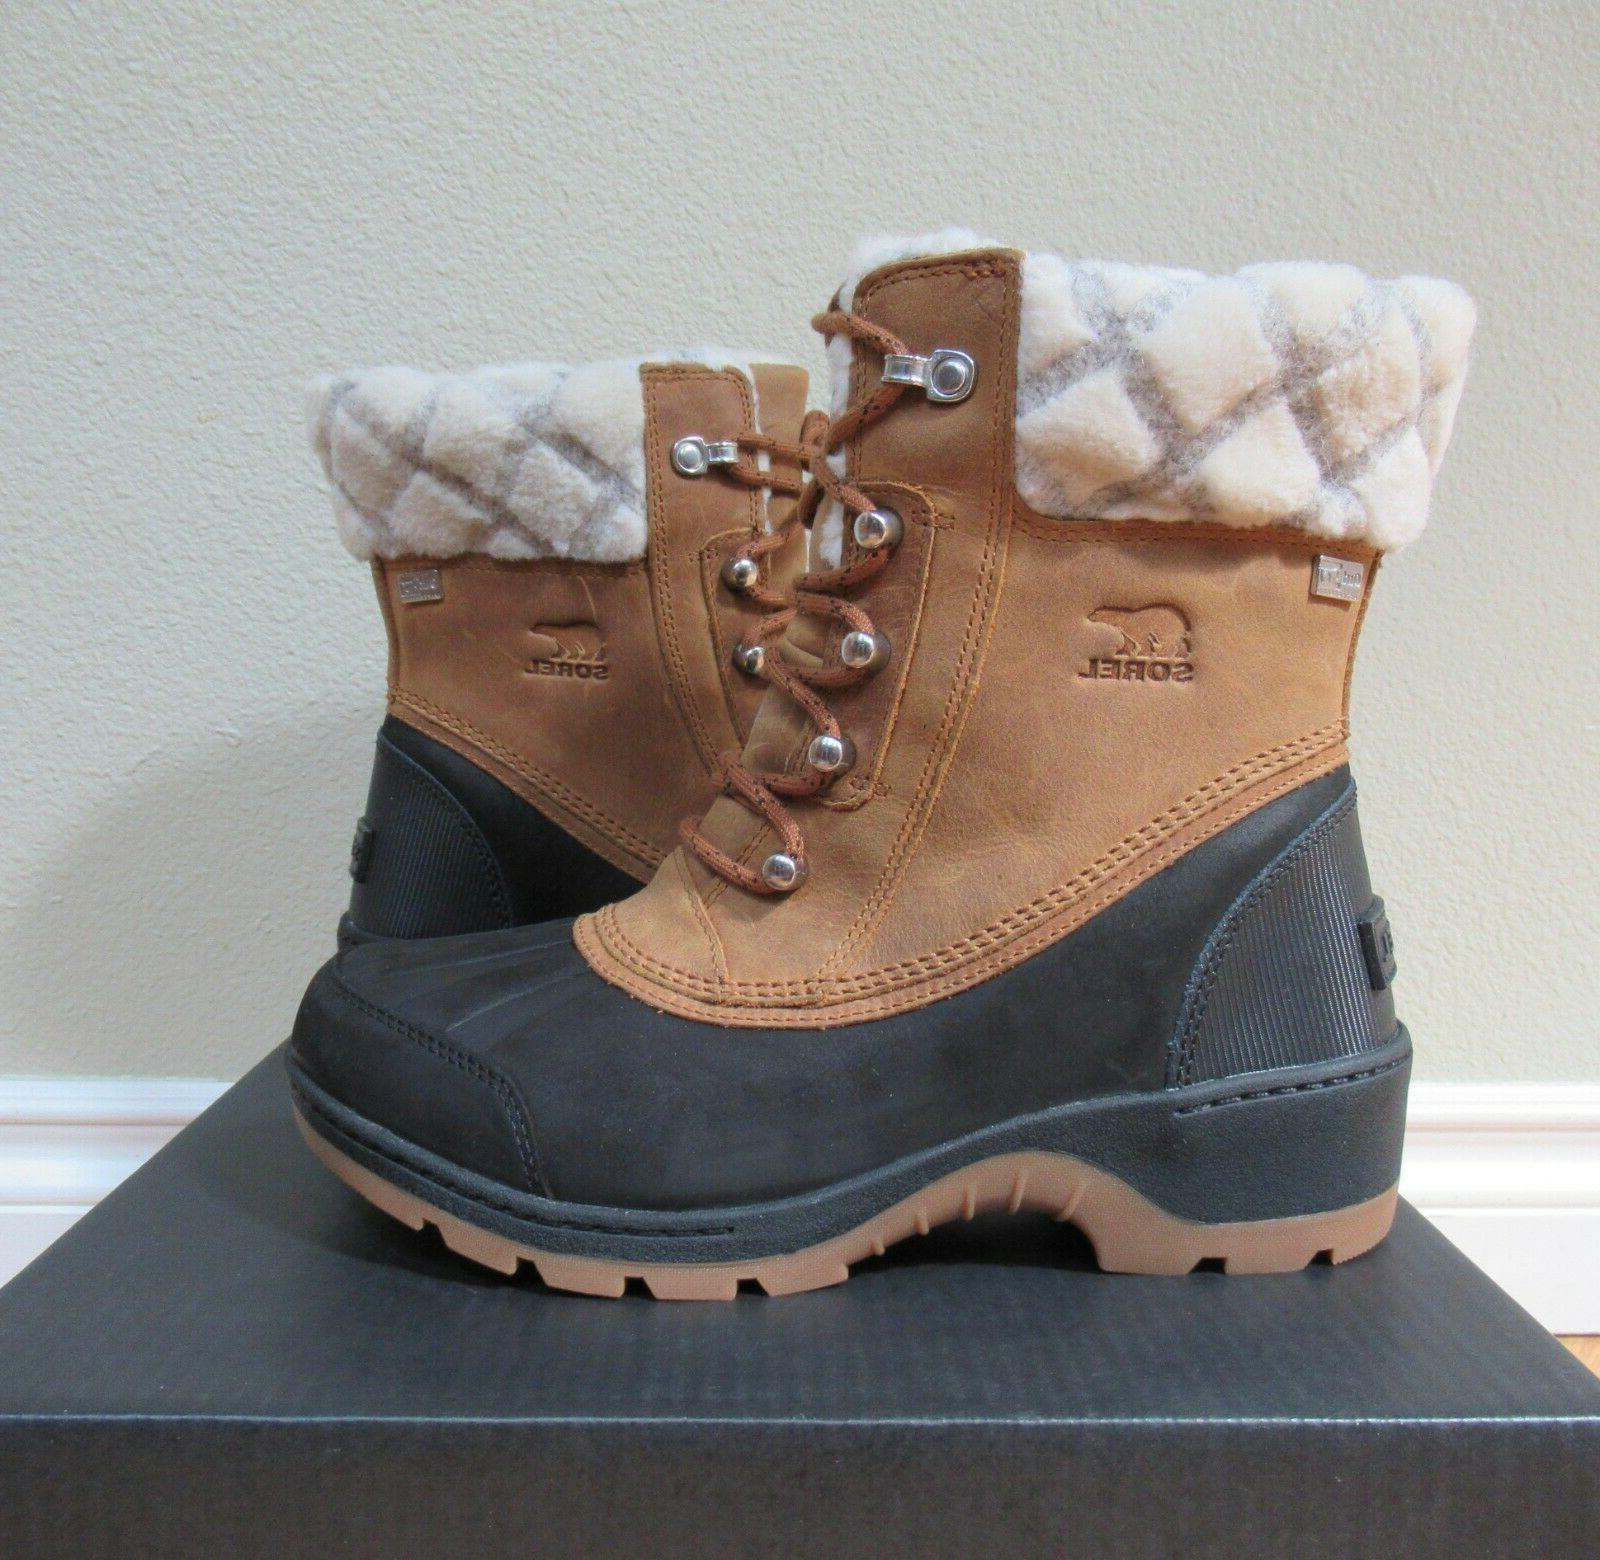 NEW BOX SOREL WOMENS 6.5-7-9 INSULATED WINTER BOOTS WARM!!